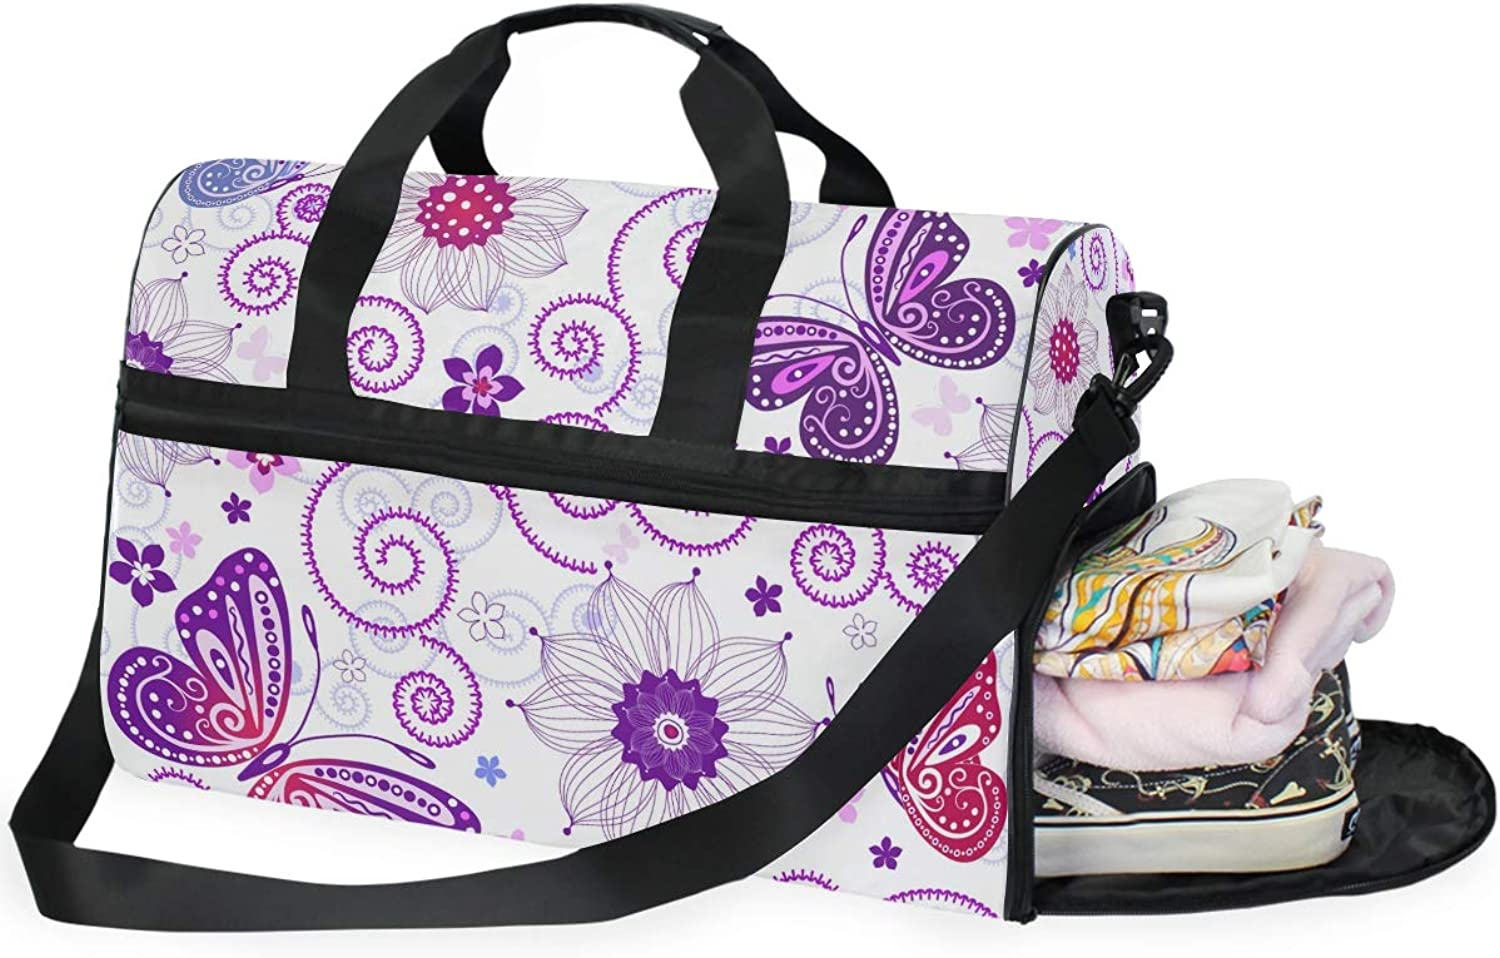 WIHVE Travel Duffel Bag Purple Flowers Butterfly Gym Bag with shoes Compartment